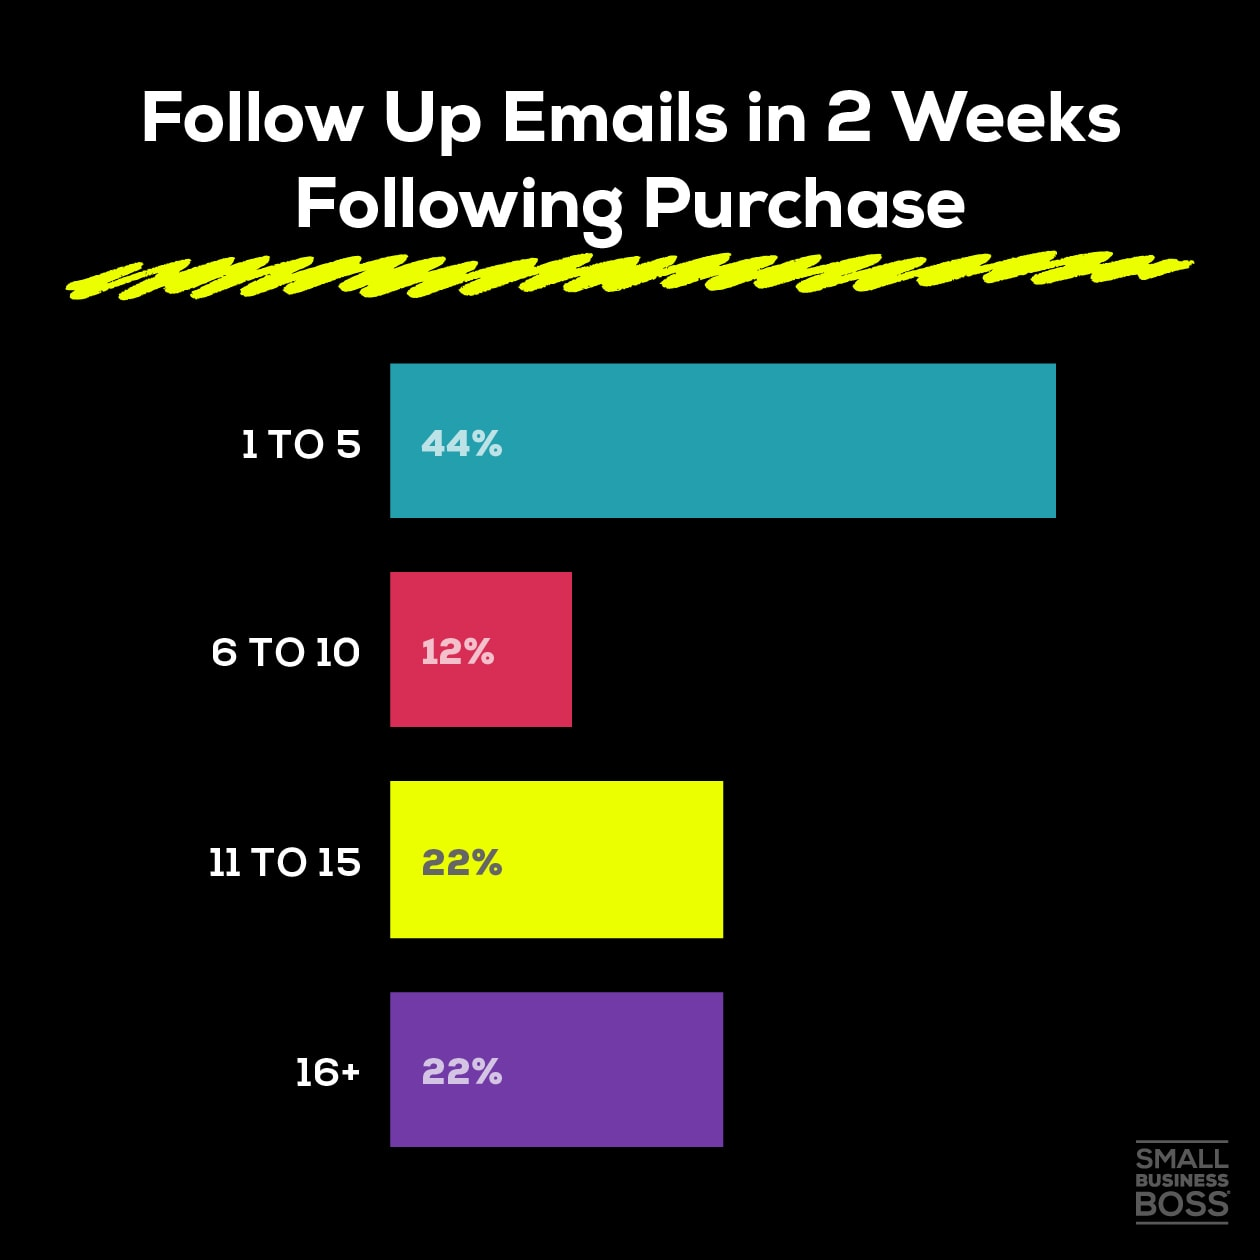 Follow Up Emails in 2 Weeks Following Purchase